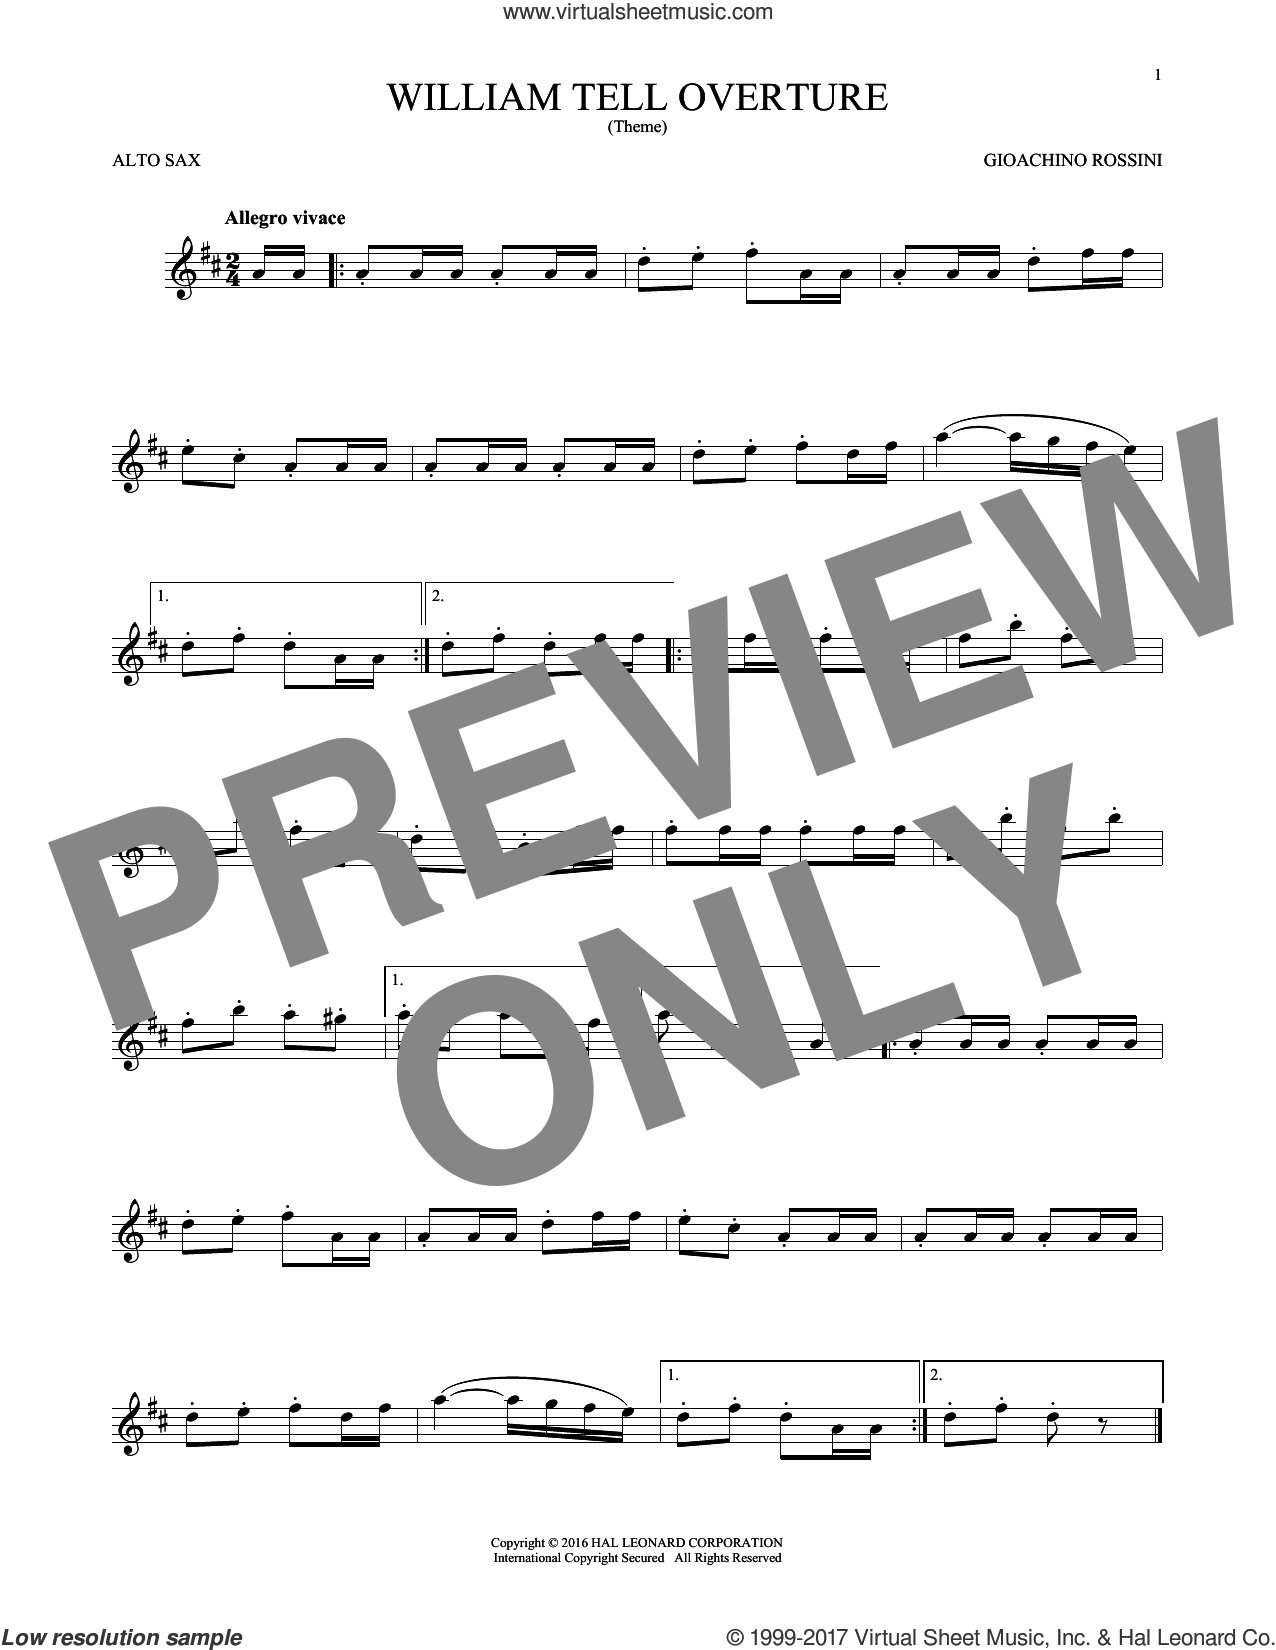 William Tell Overture sheet music for alto saxophone solo by Rossini, Gioacchino, classical score, intermediate skill level